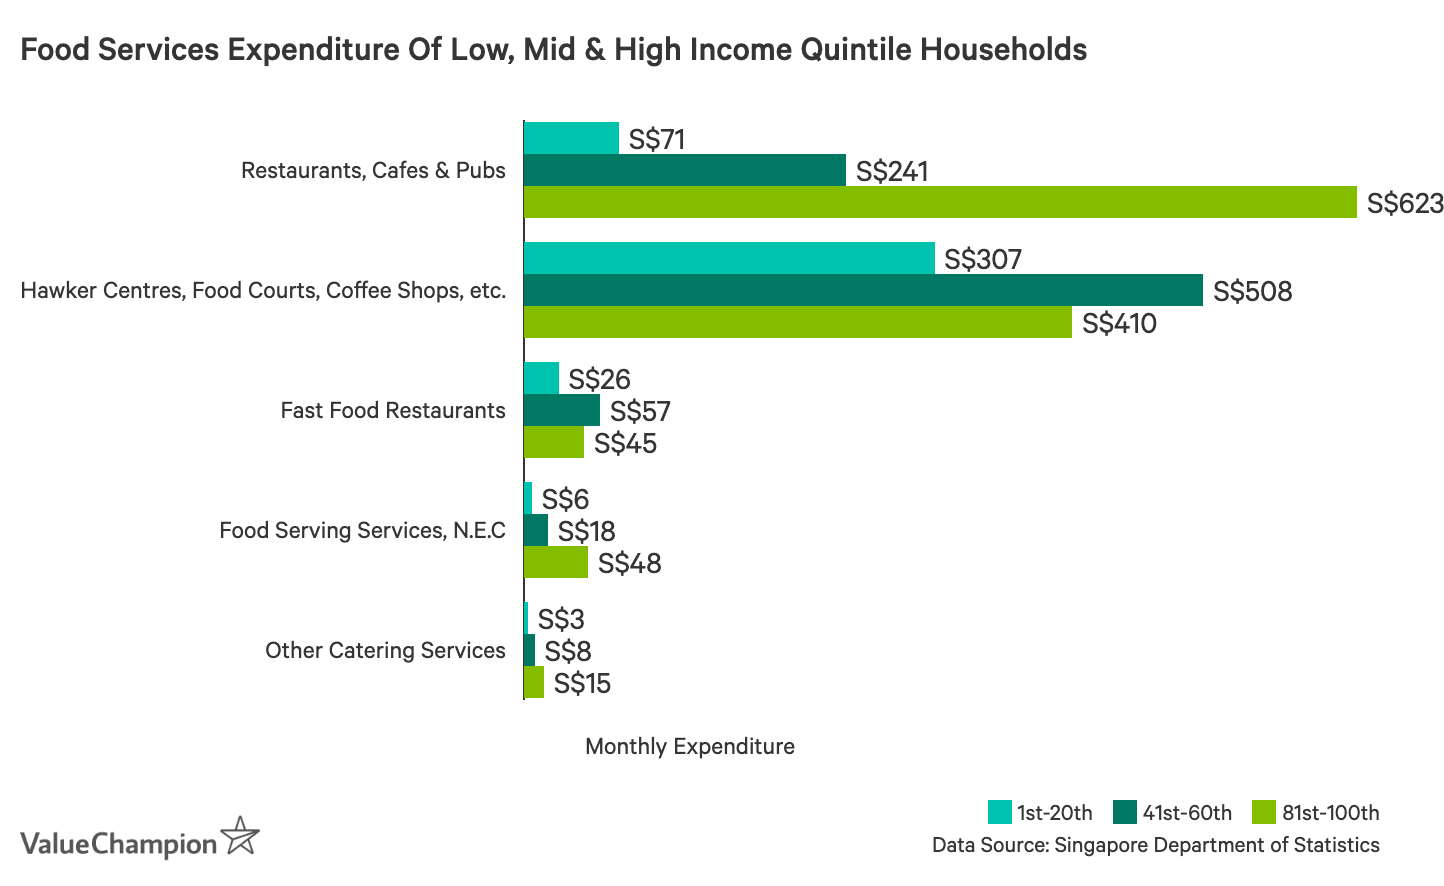 This graph shows the differences in monthly expenditure on different types of food businesses between low-, mid- and high-income households in Singapore